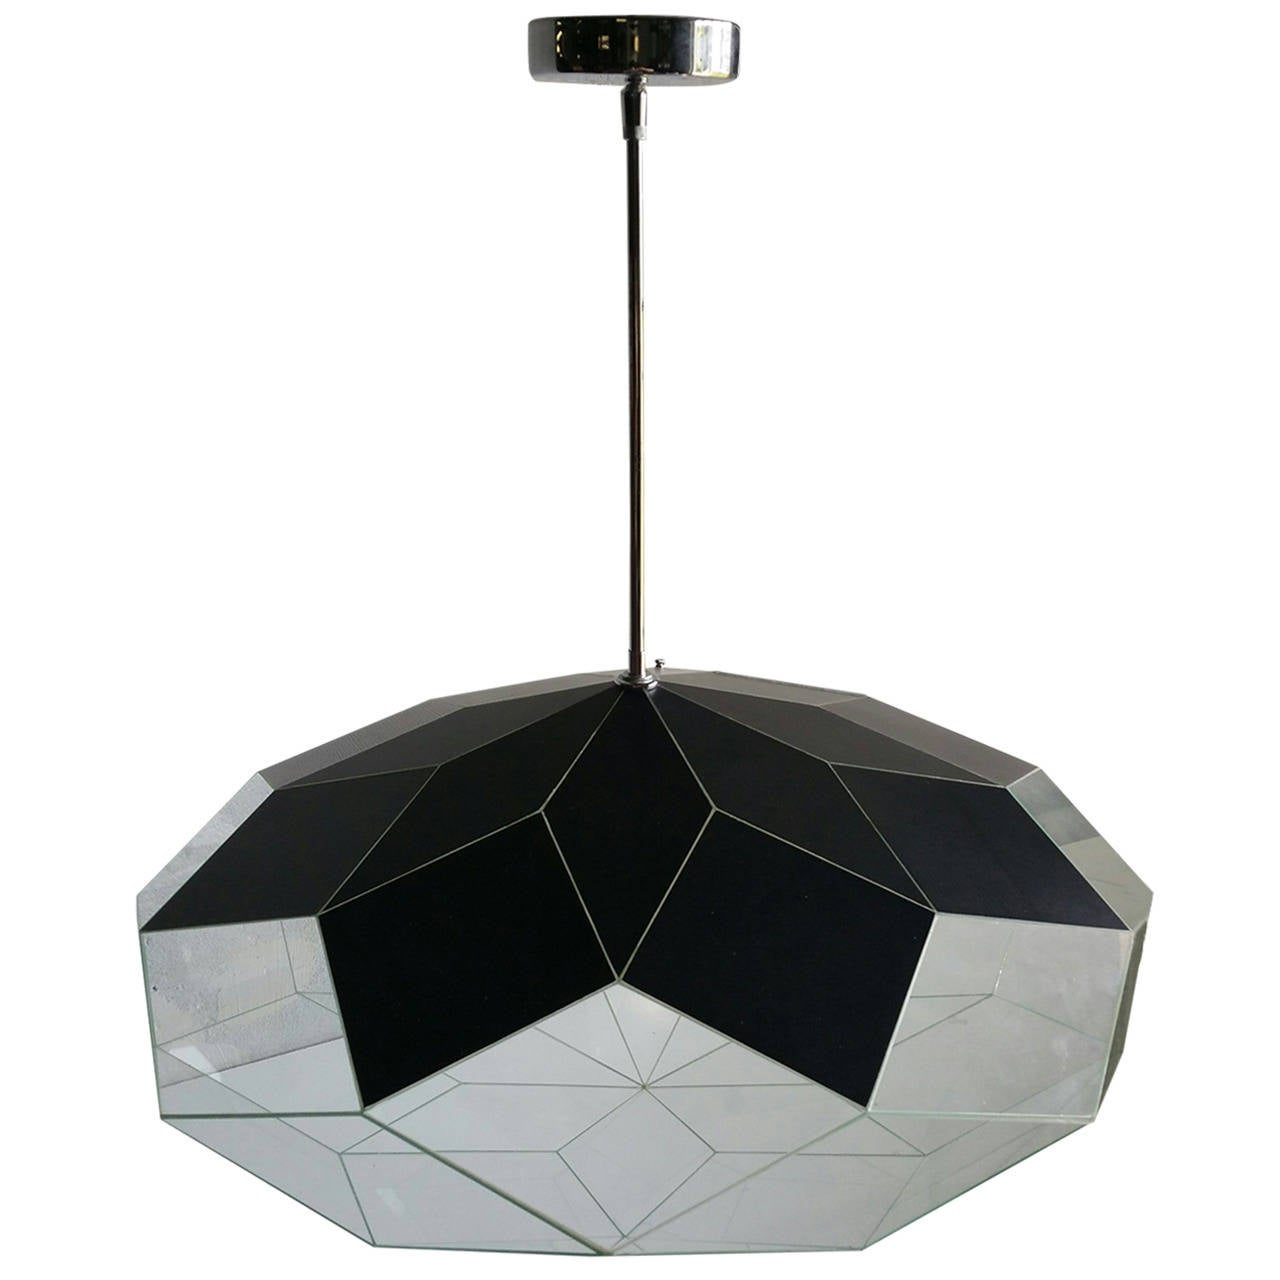 Custom Faceted Glass And Mirror Hanging Pendant Lamp Morrison Lighting For Sale